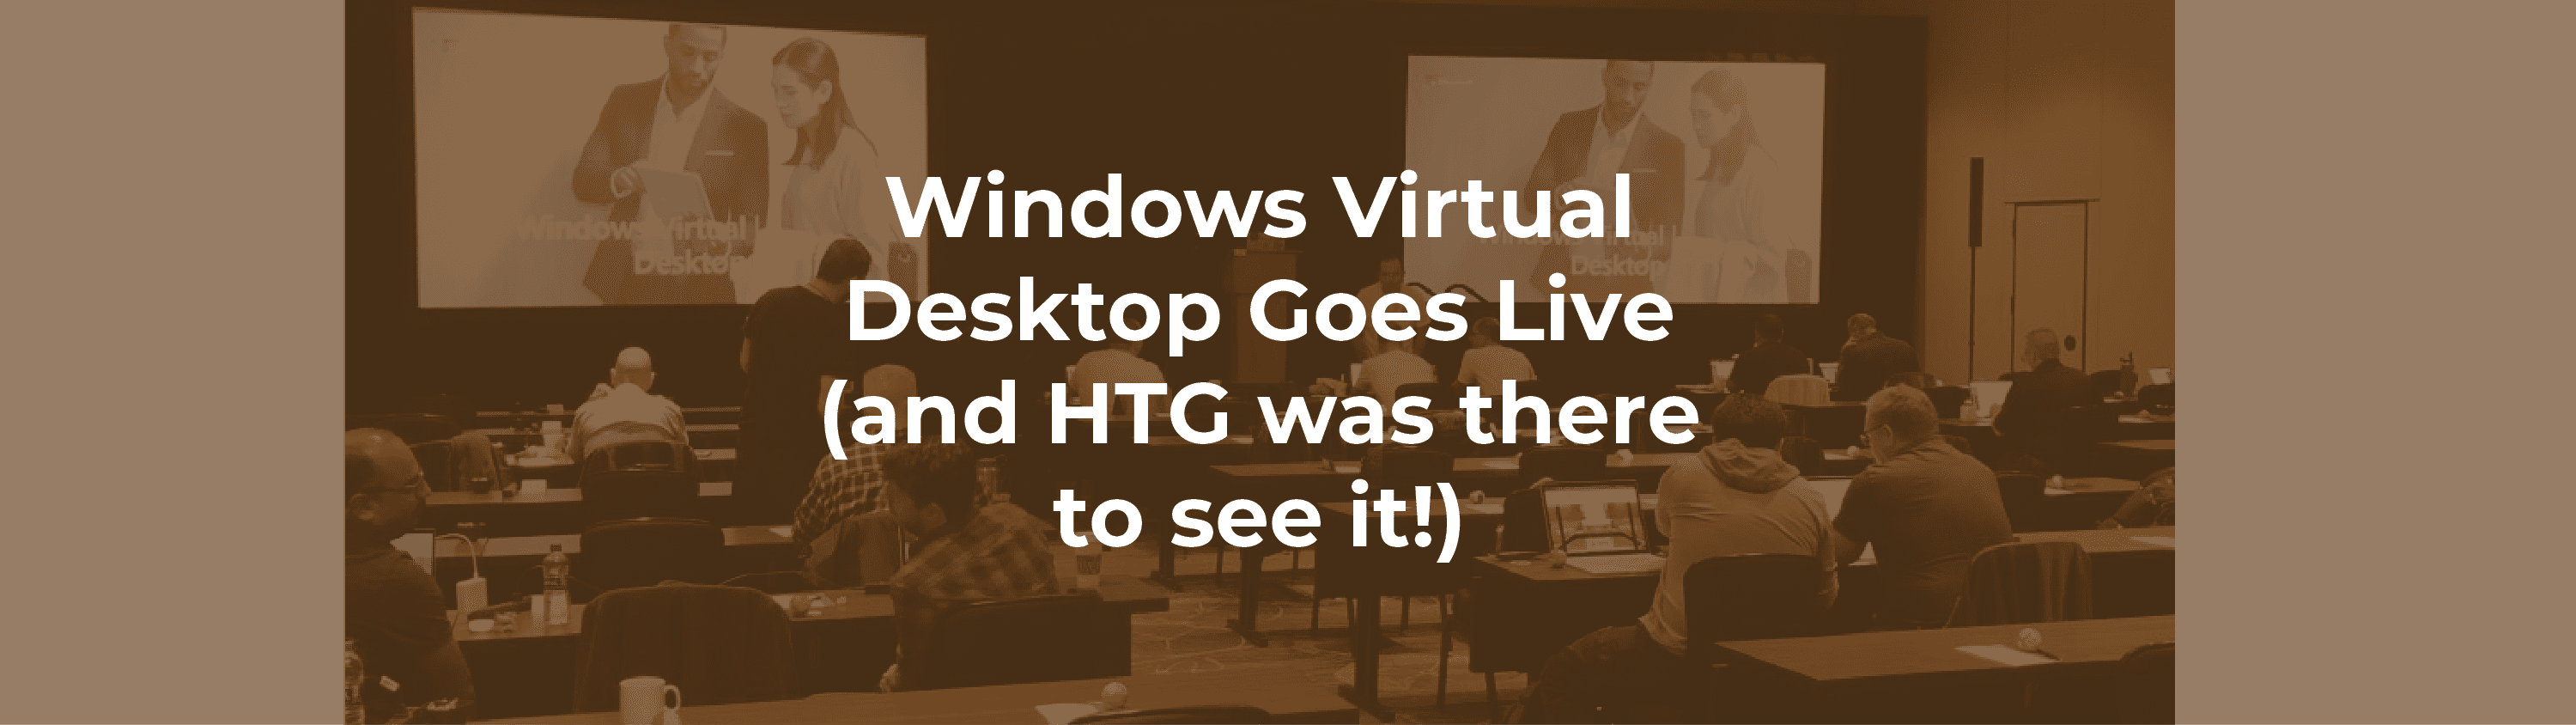 Windows Virtual Desktop Goes Live (and HTG was there to see it!)